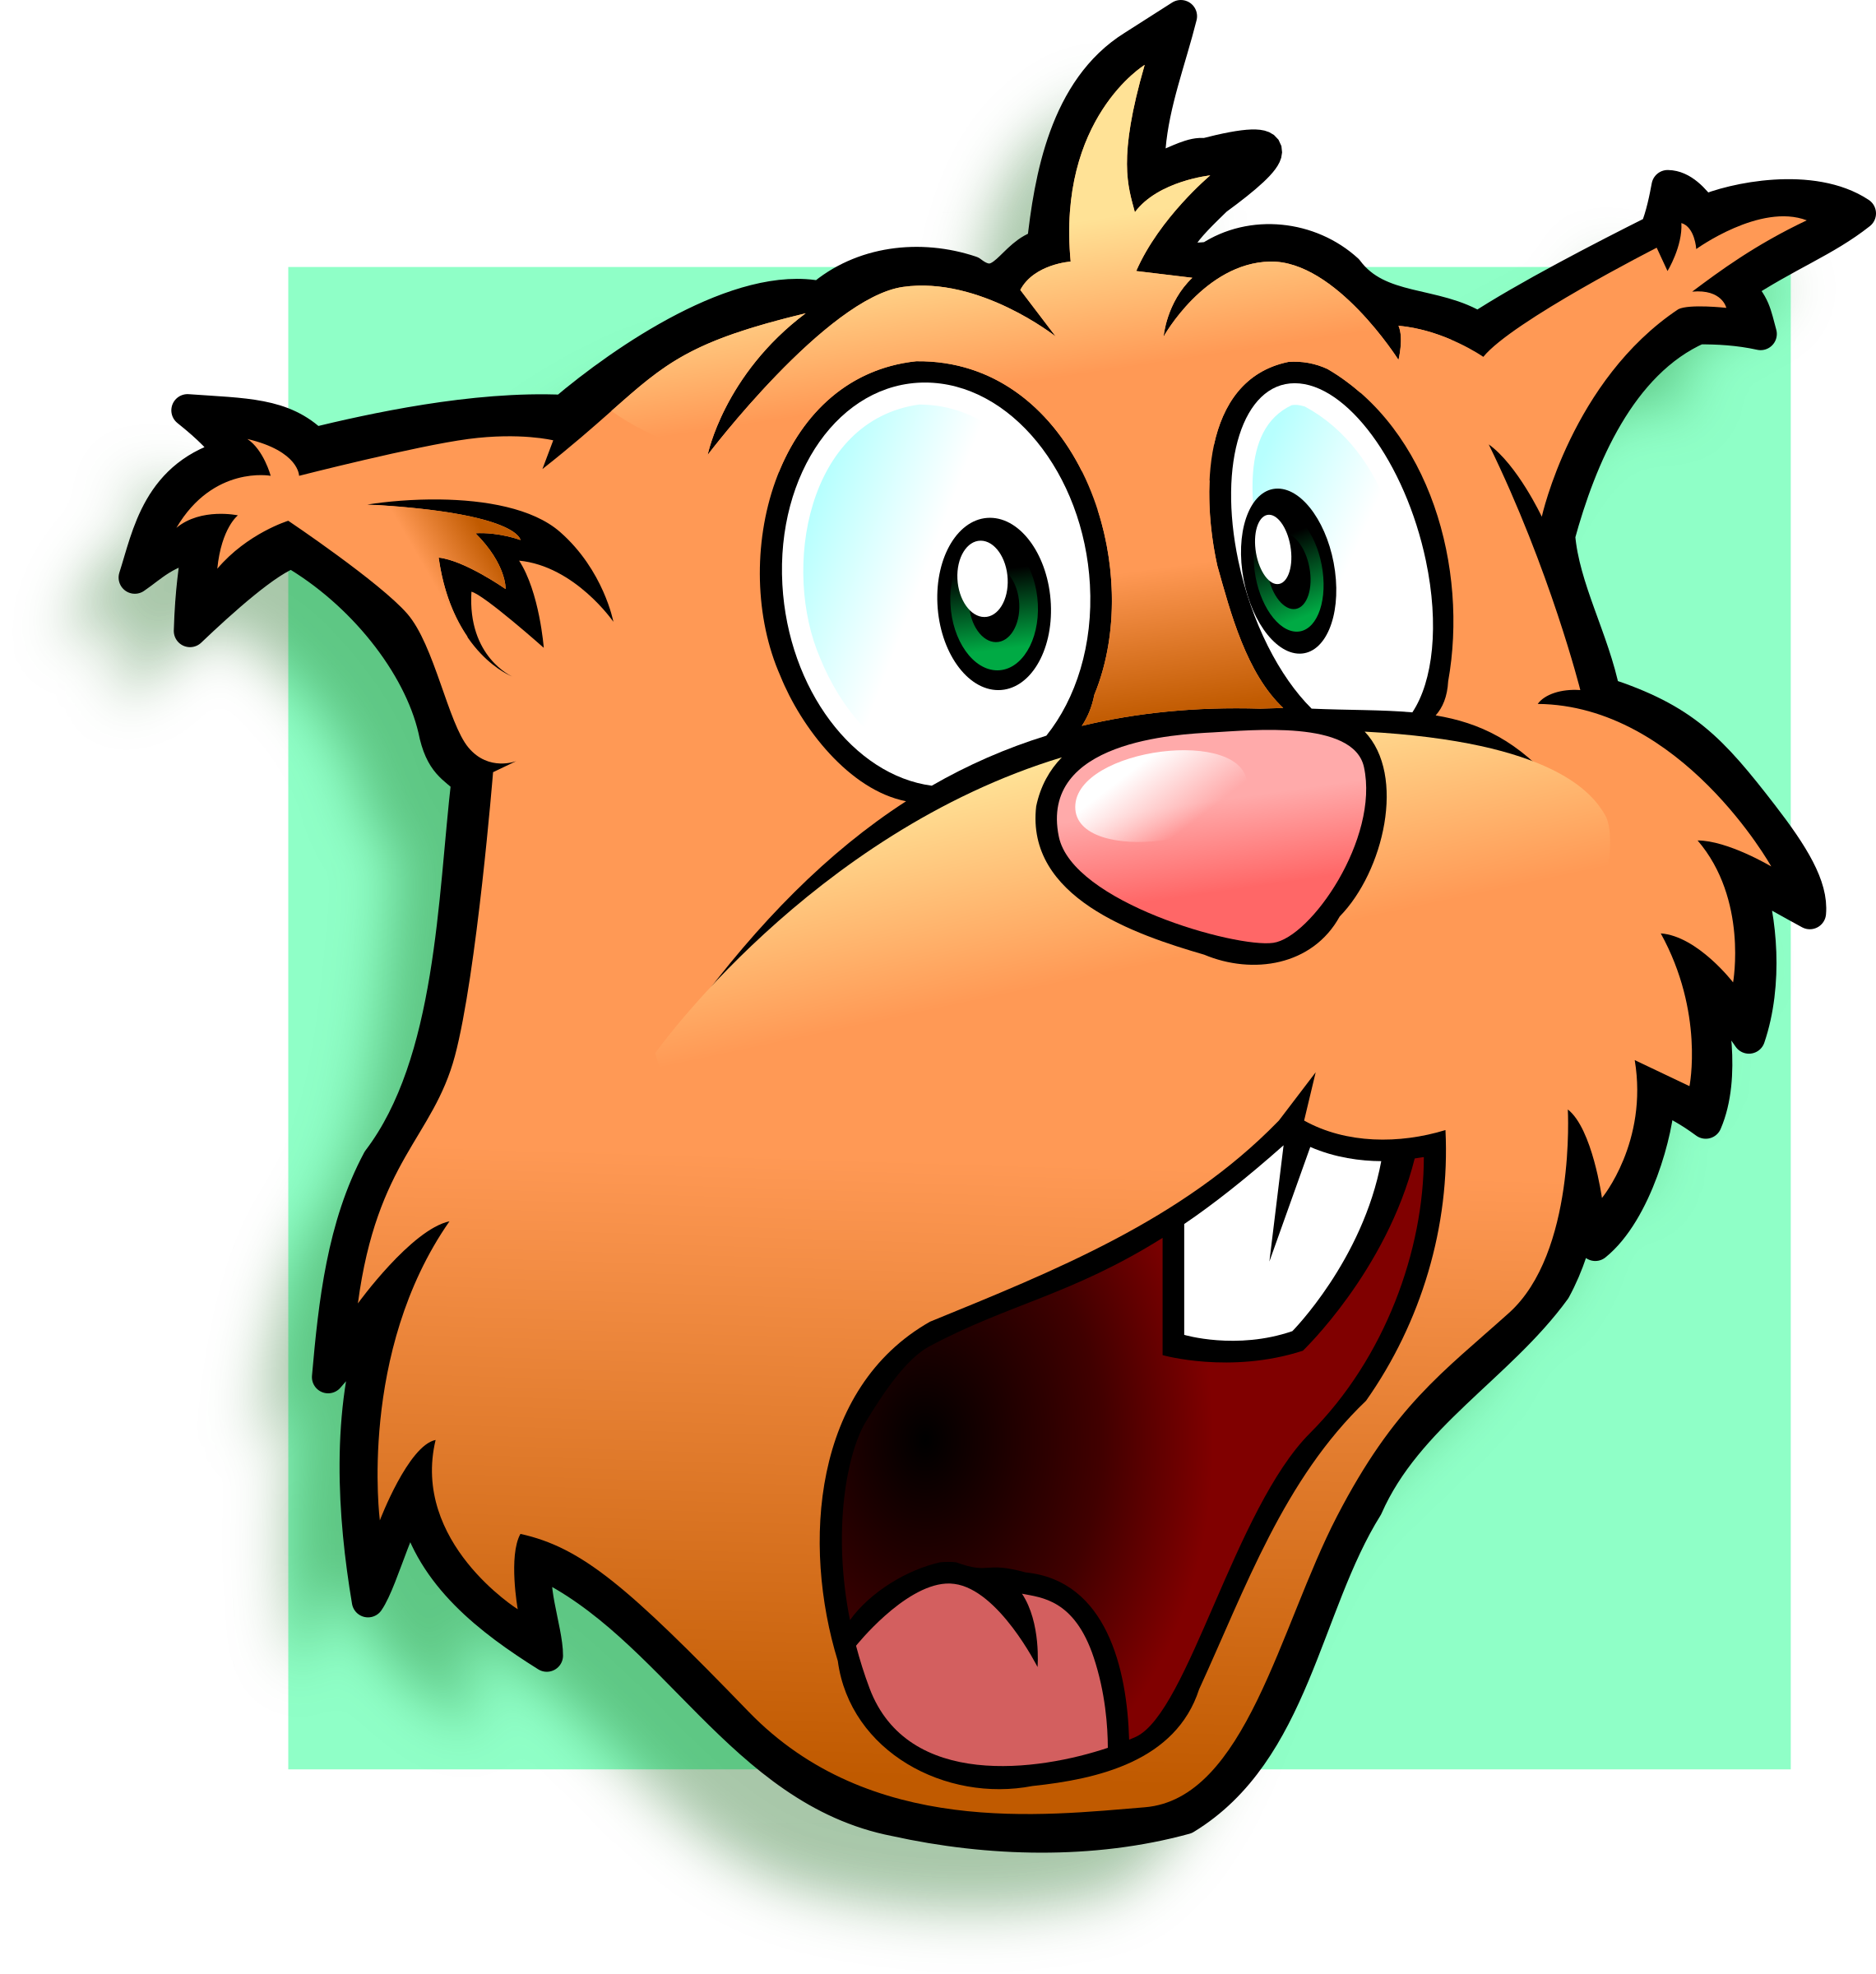 D20 clipart avatar. Amazed chipmunk icons png